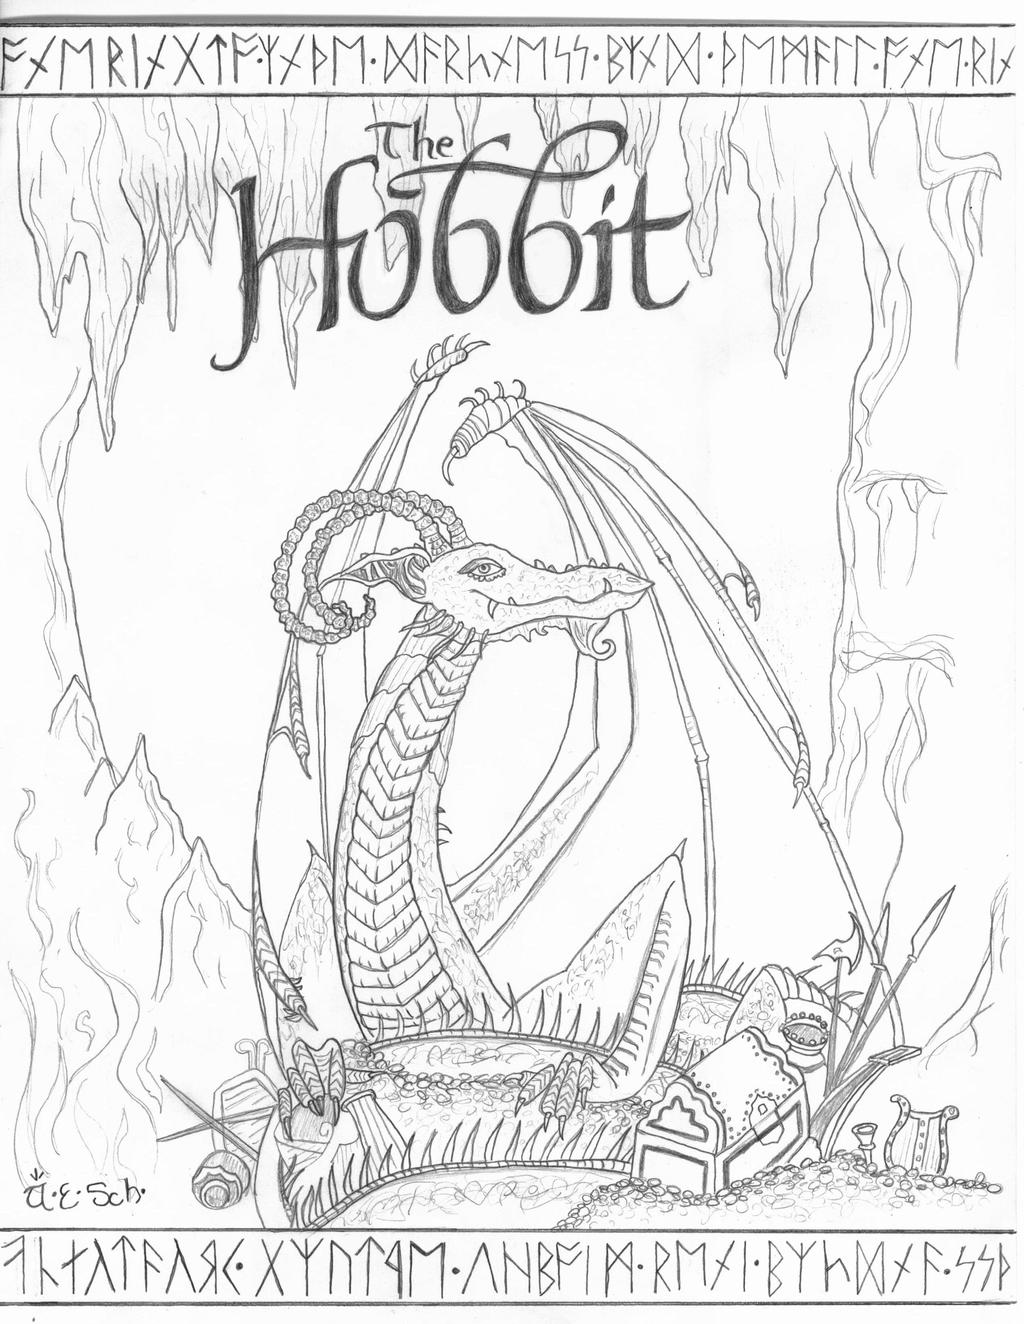 how to draw the hobbit characters cover page sketch the hobbit by fanatikerfrau on deviantart the hobbit draw characters to how